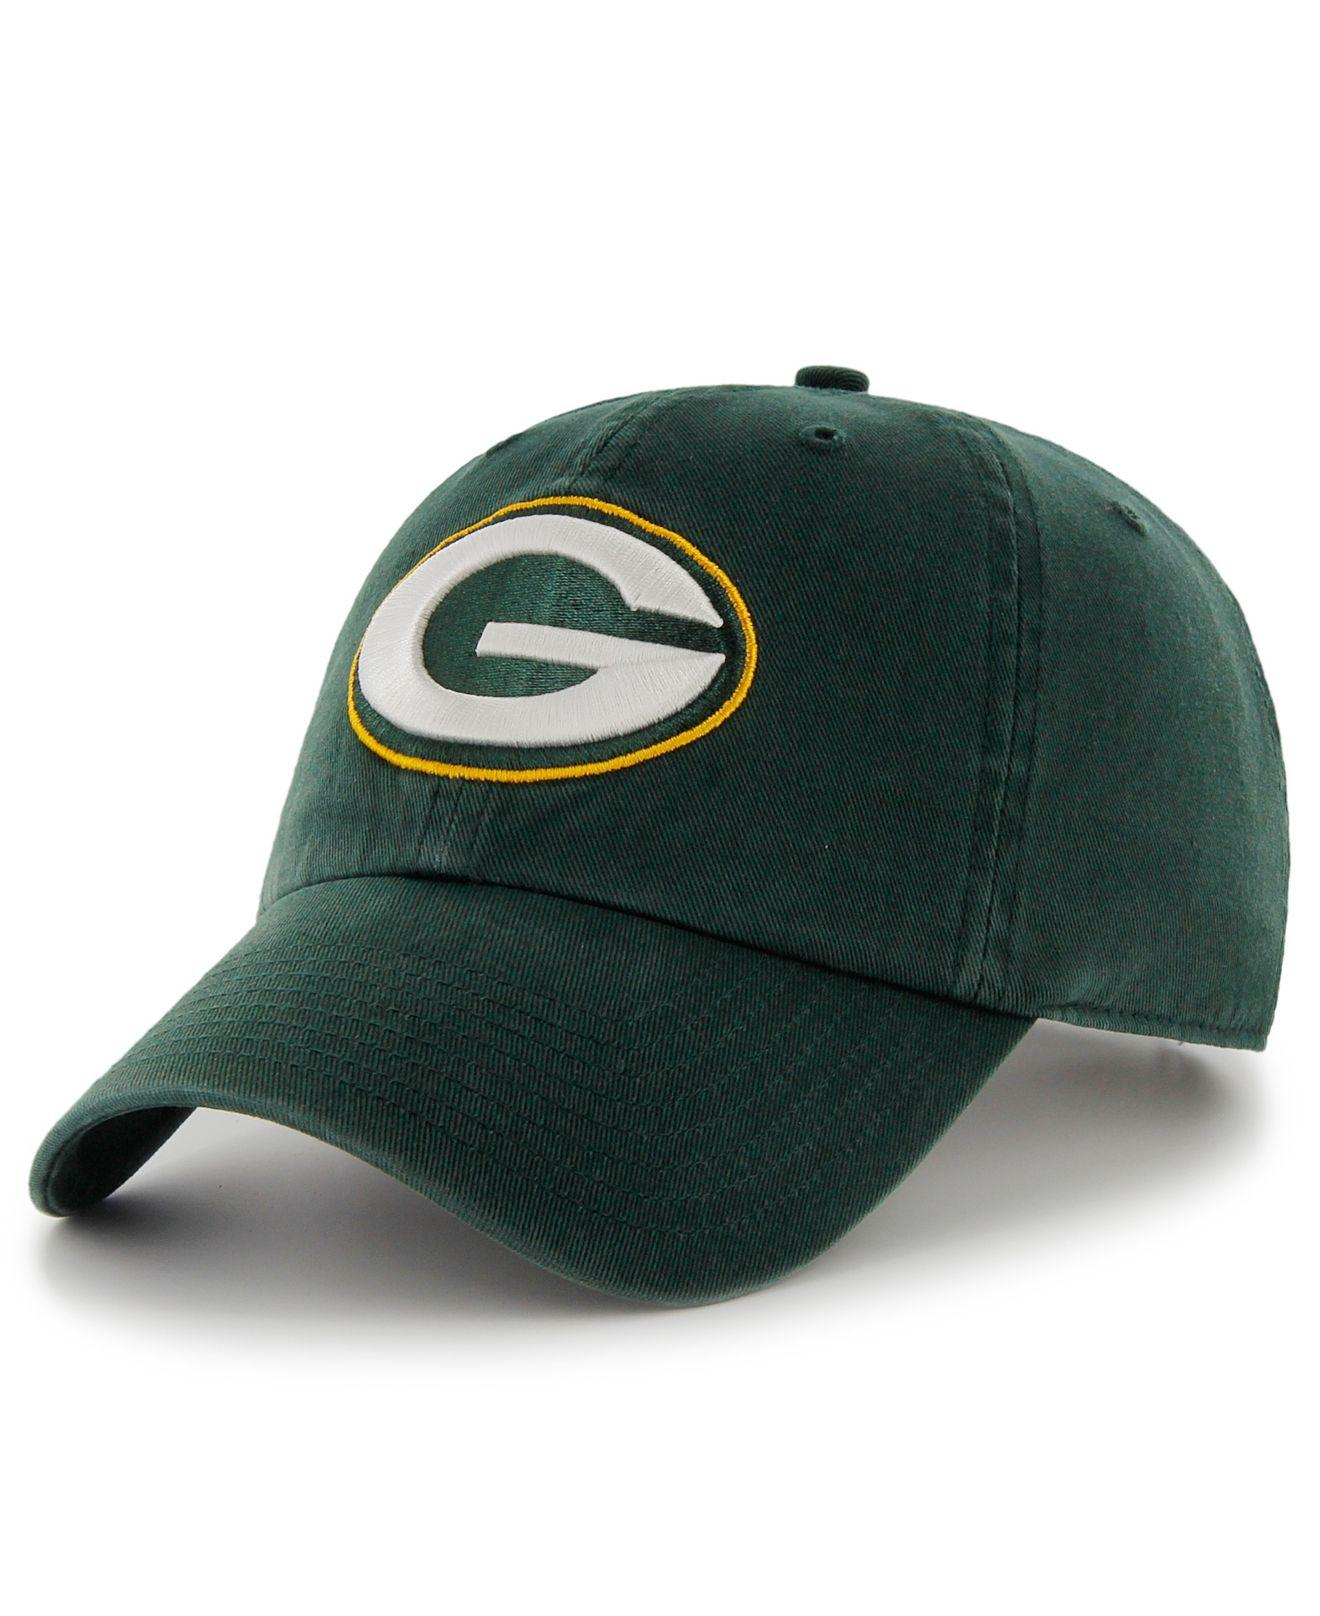 Lyst - 47 Brand Green Bay Packers Franchise Hat in Green for Men 7ee789d2e